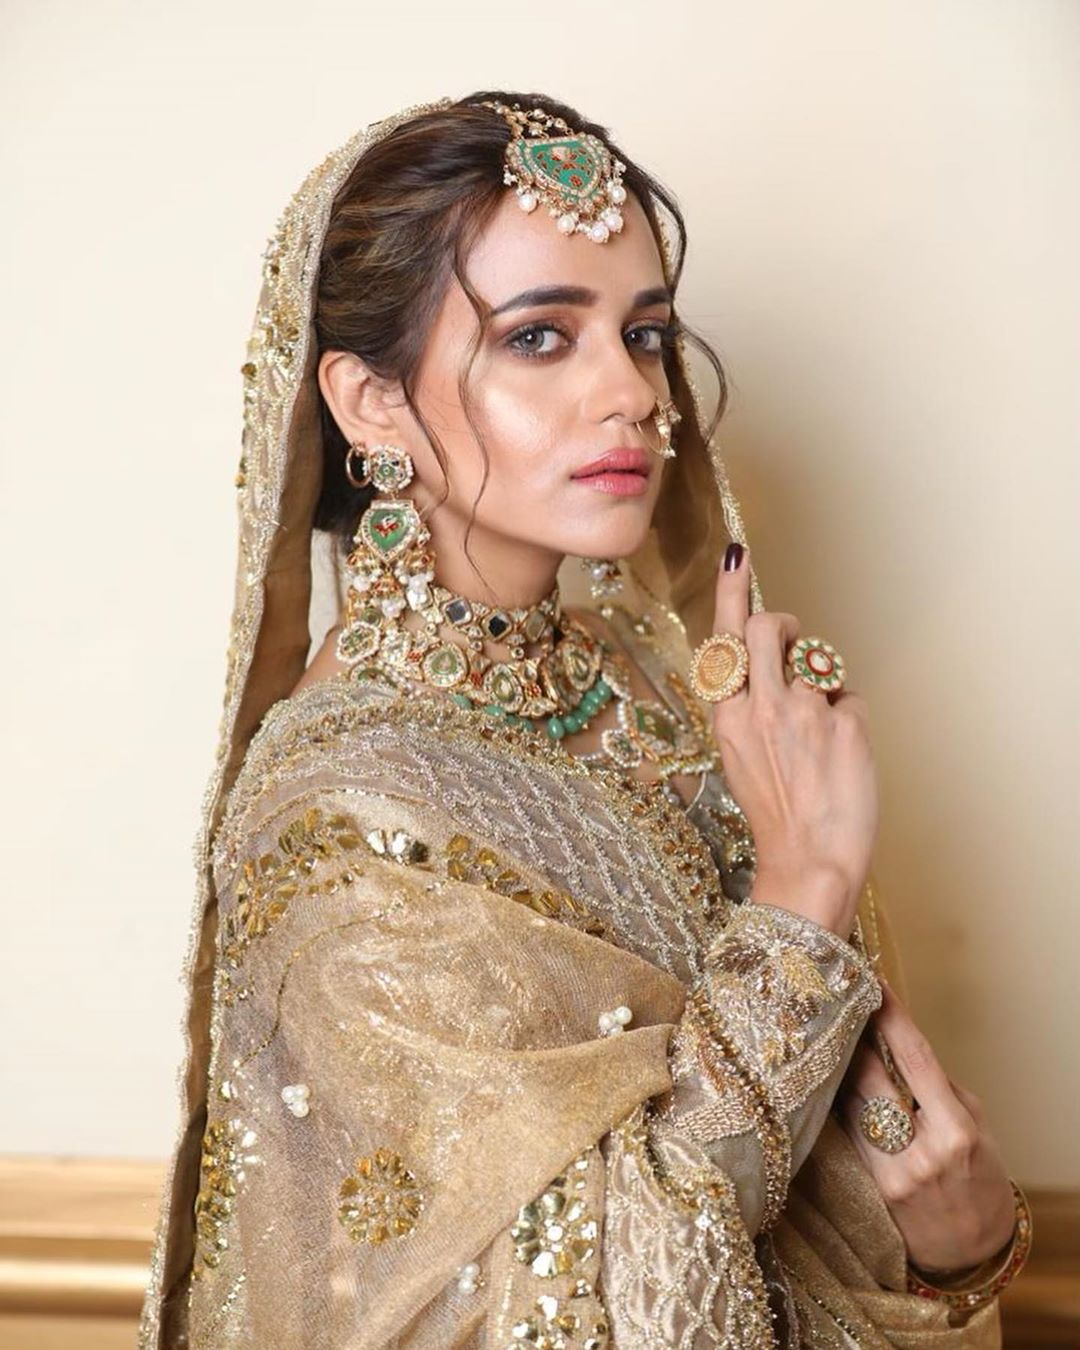 Beautiful Pictures of Actress Sumbul Iqbal from HBCW19